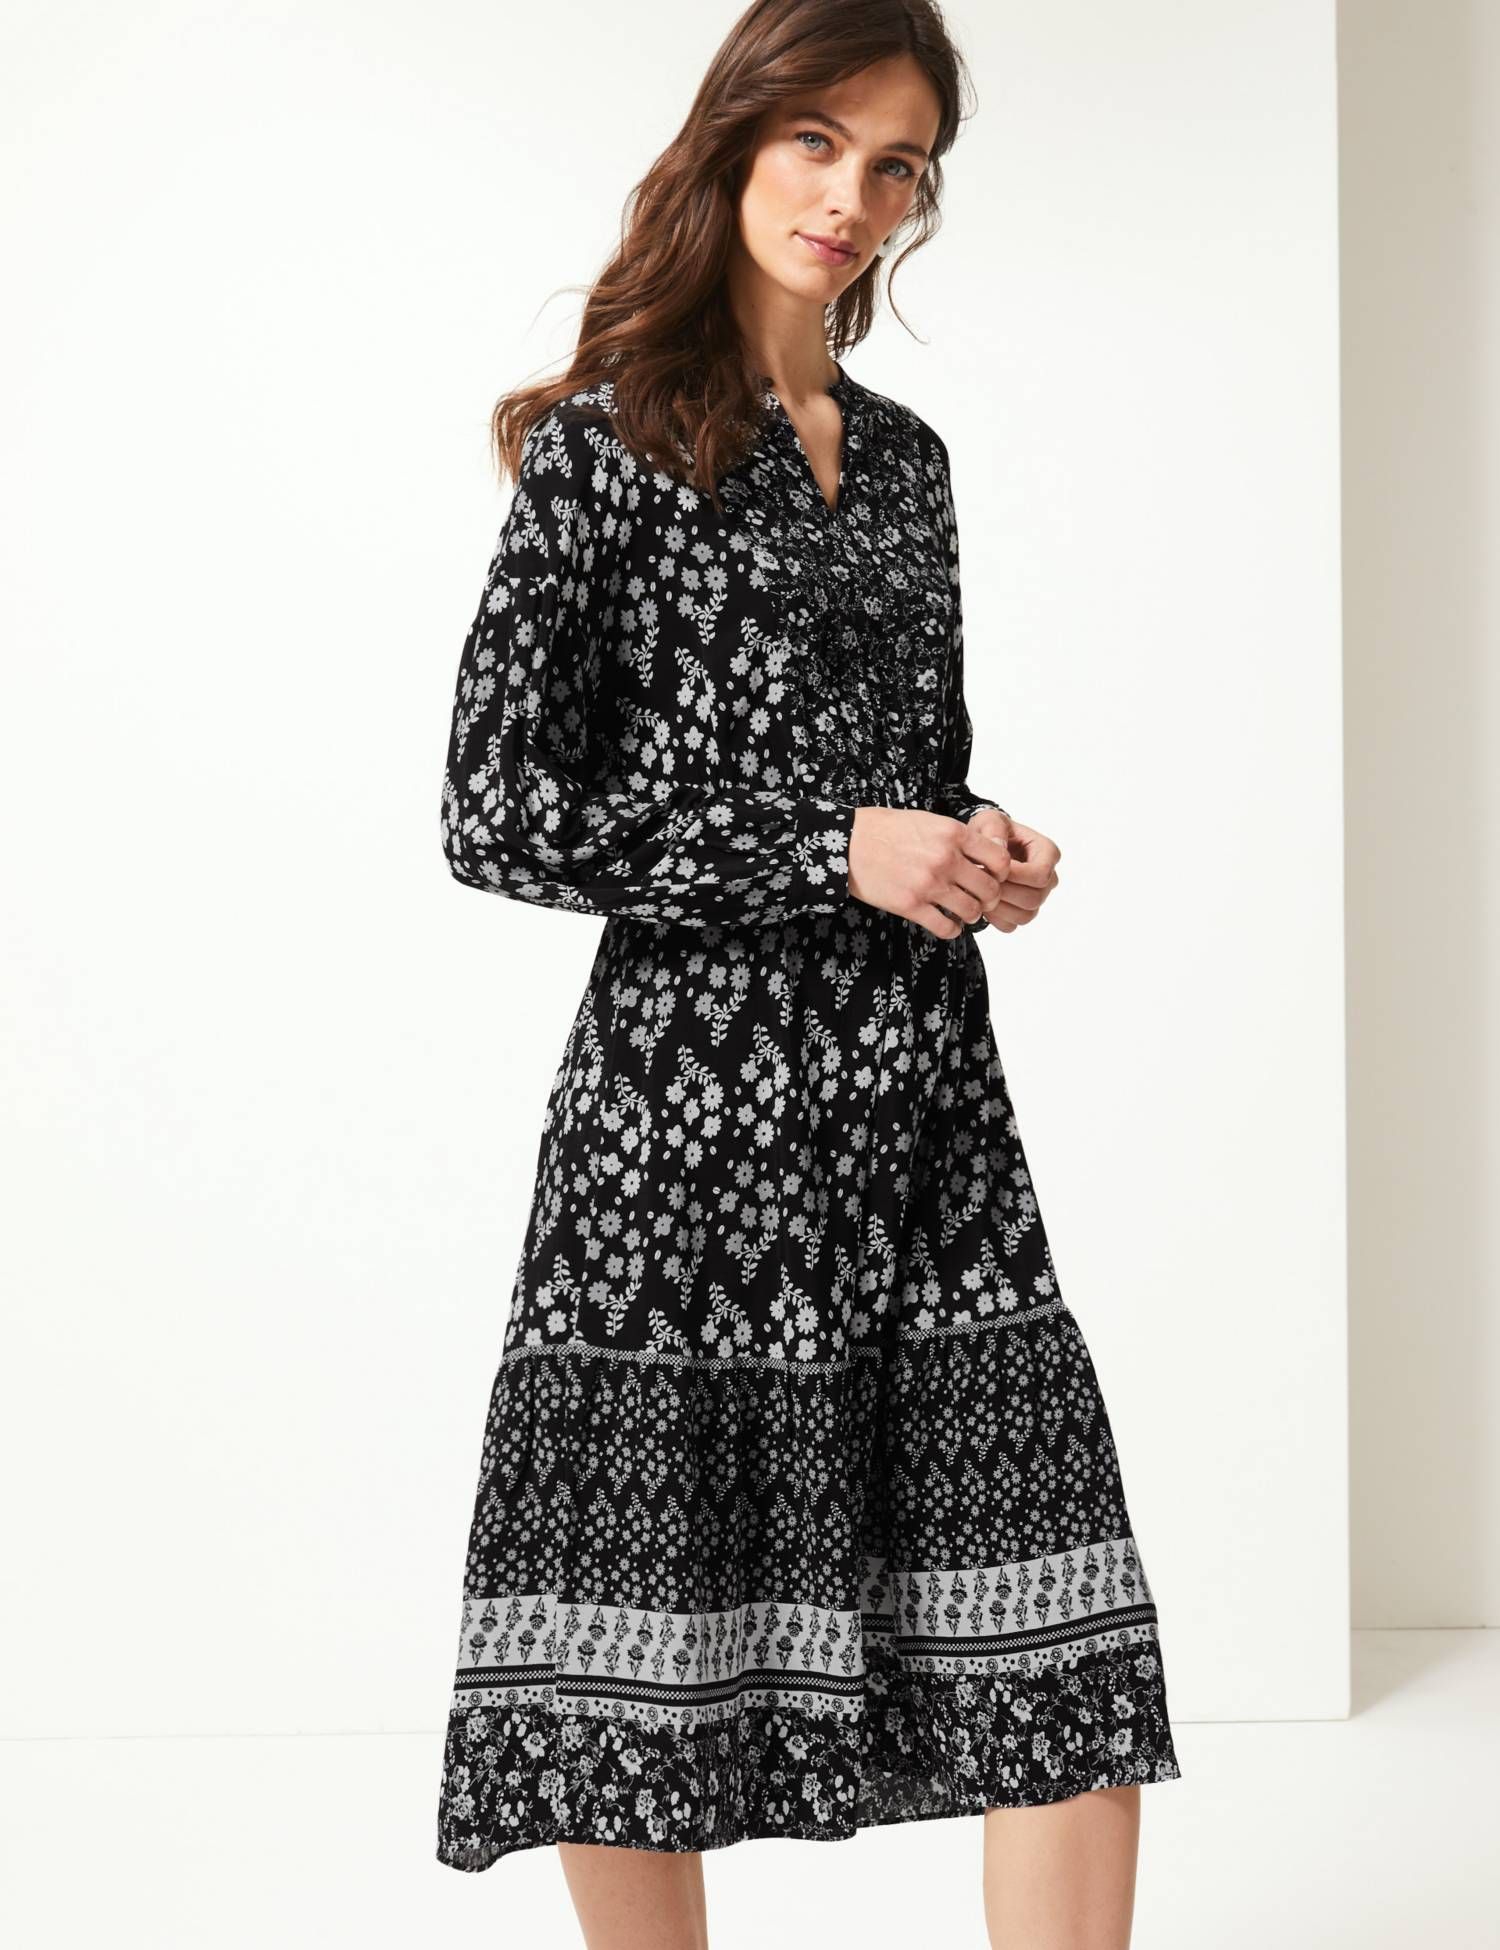 7297fc184936b Marks   Spencer s new collection 2019 is stunning here are our favourites